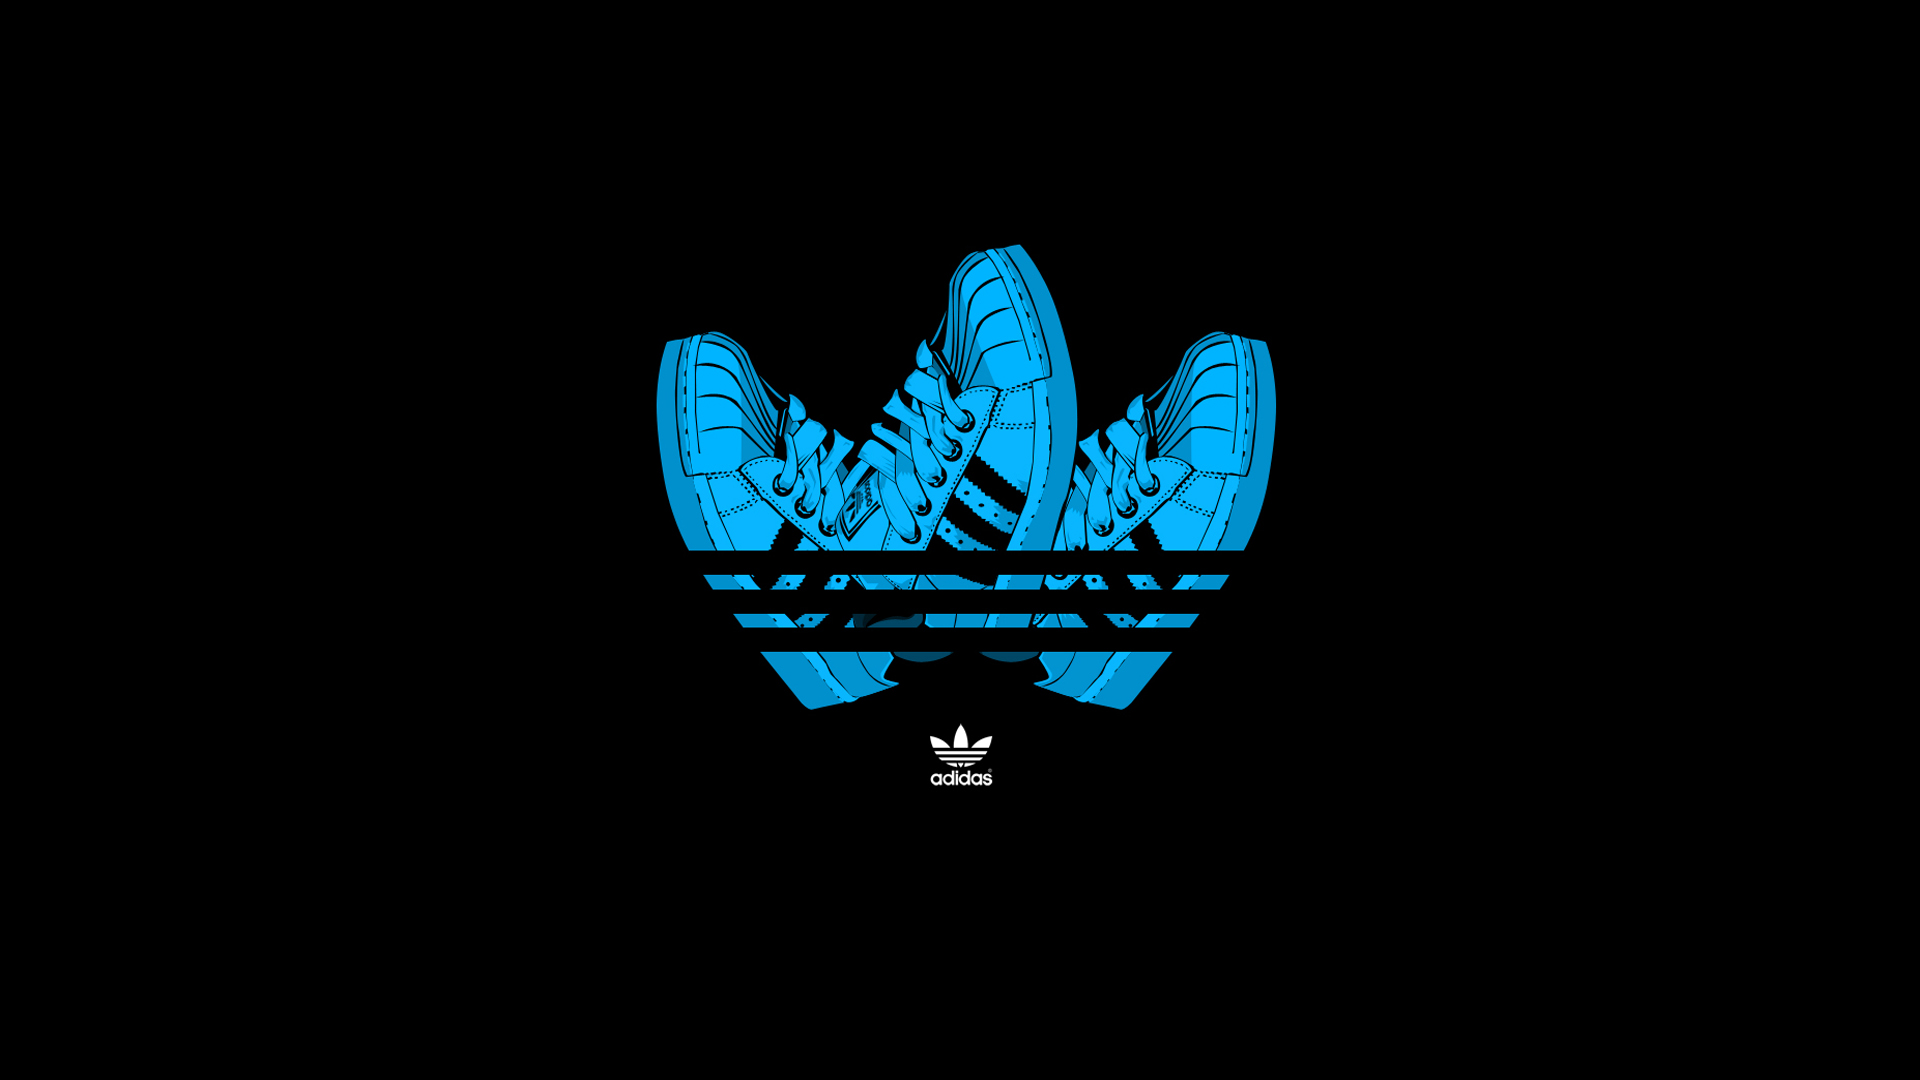 adidas wallpaperjpg 1920x1080